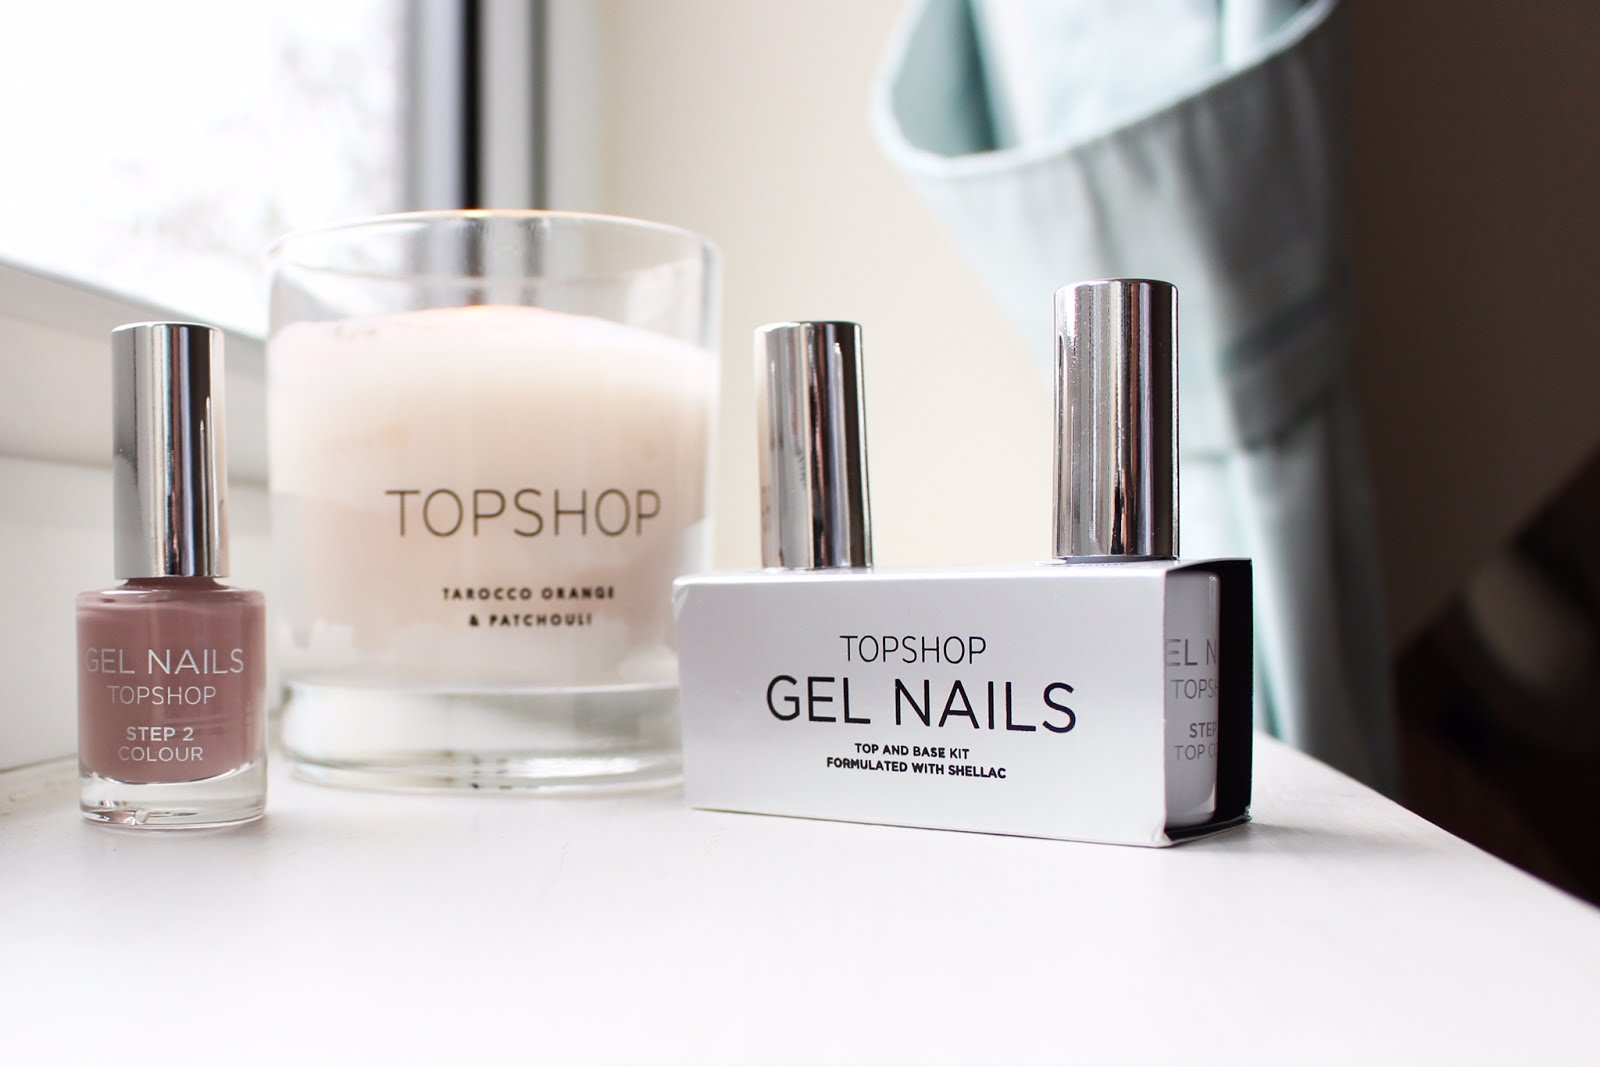 My topshop valentines day makeup look evie rose lane having painted nails is always a lovely pamper treat for me i often do them myself at home but i struggle finding the time these days solutioingenieria Images